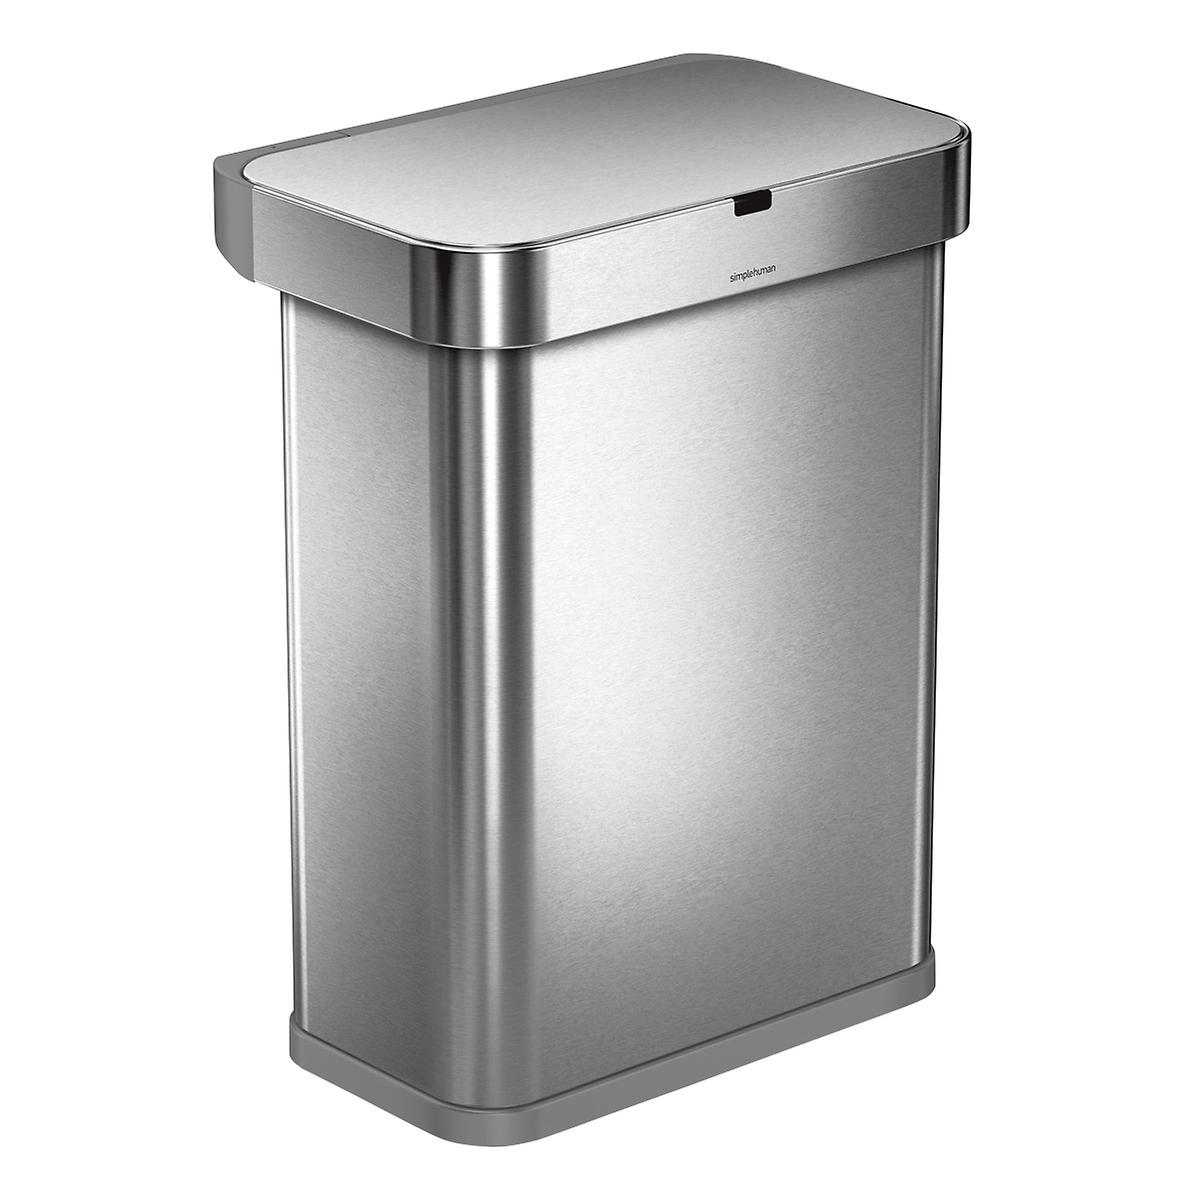 simplehuman Stainless Steel 15.3 gal./58L Voice & Motion Sensor Trash Can